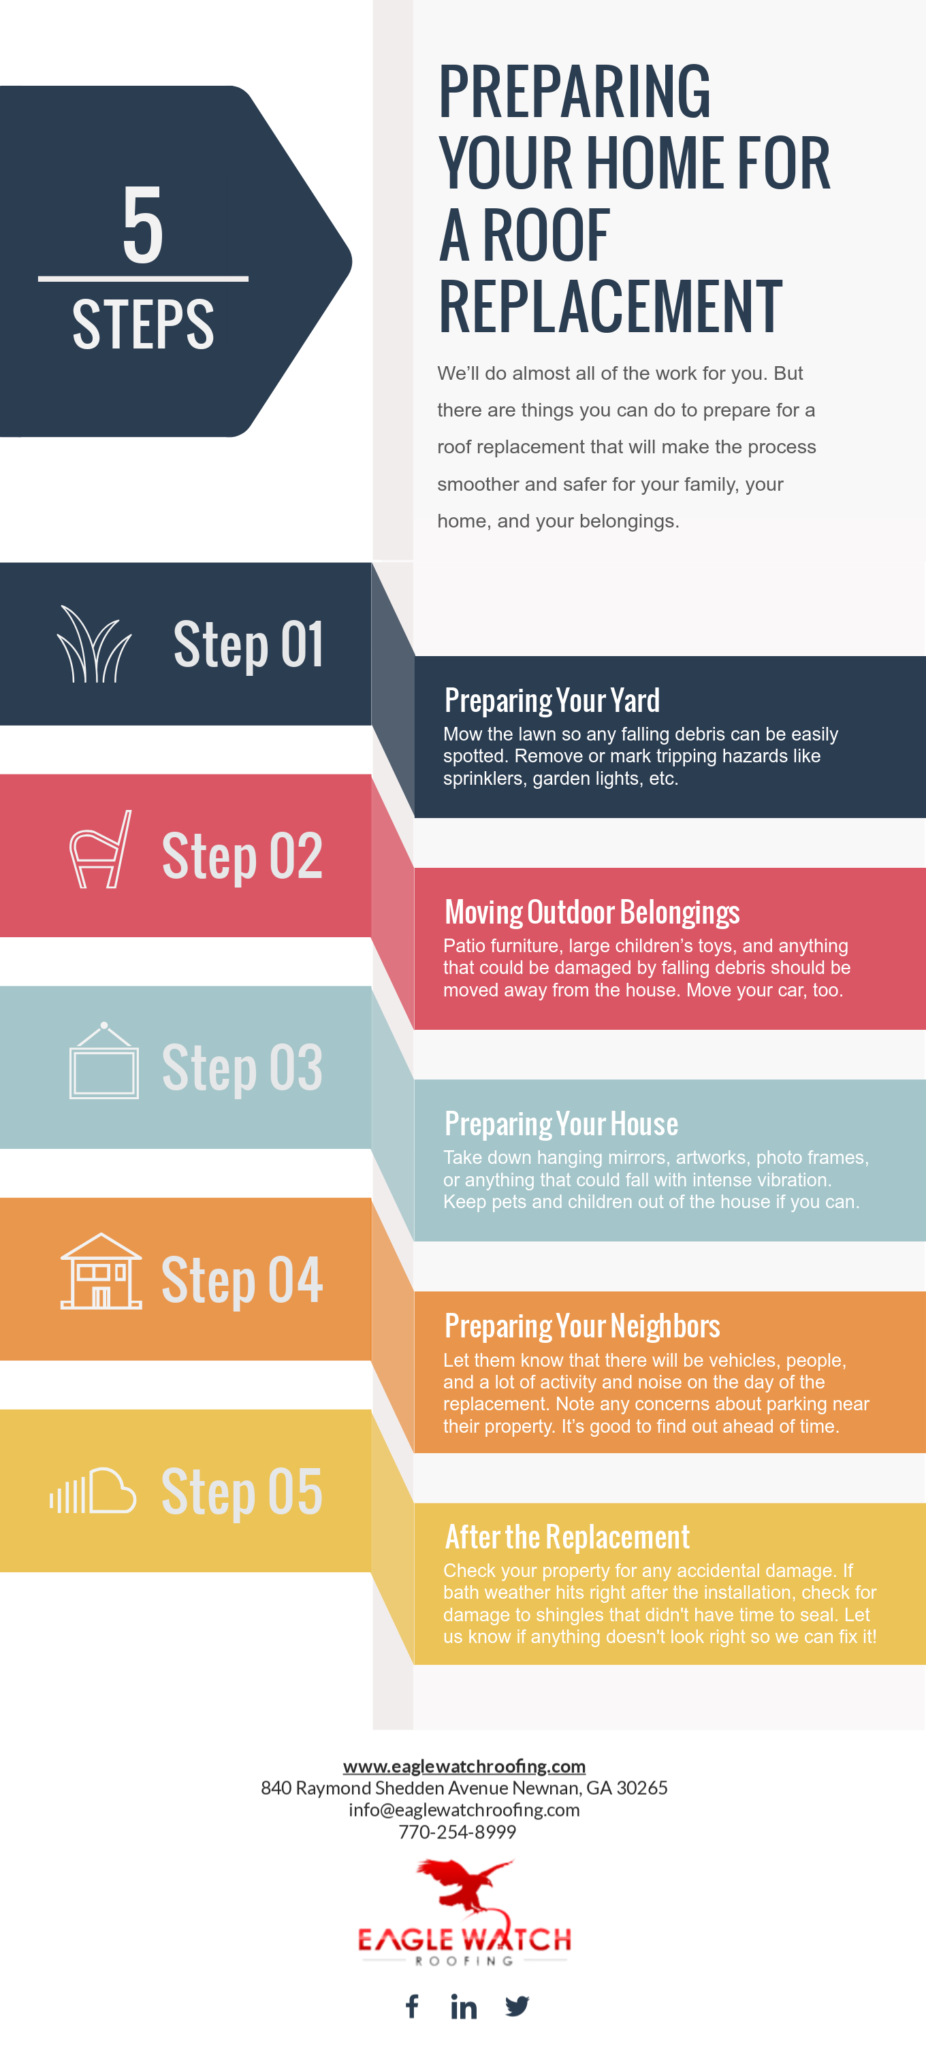 Tips to Prepare for a Roof Replacement [infographic]